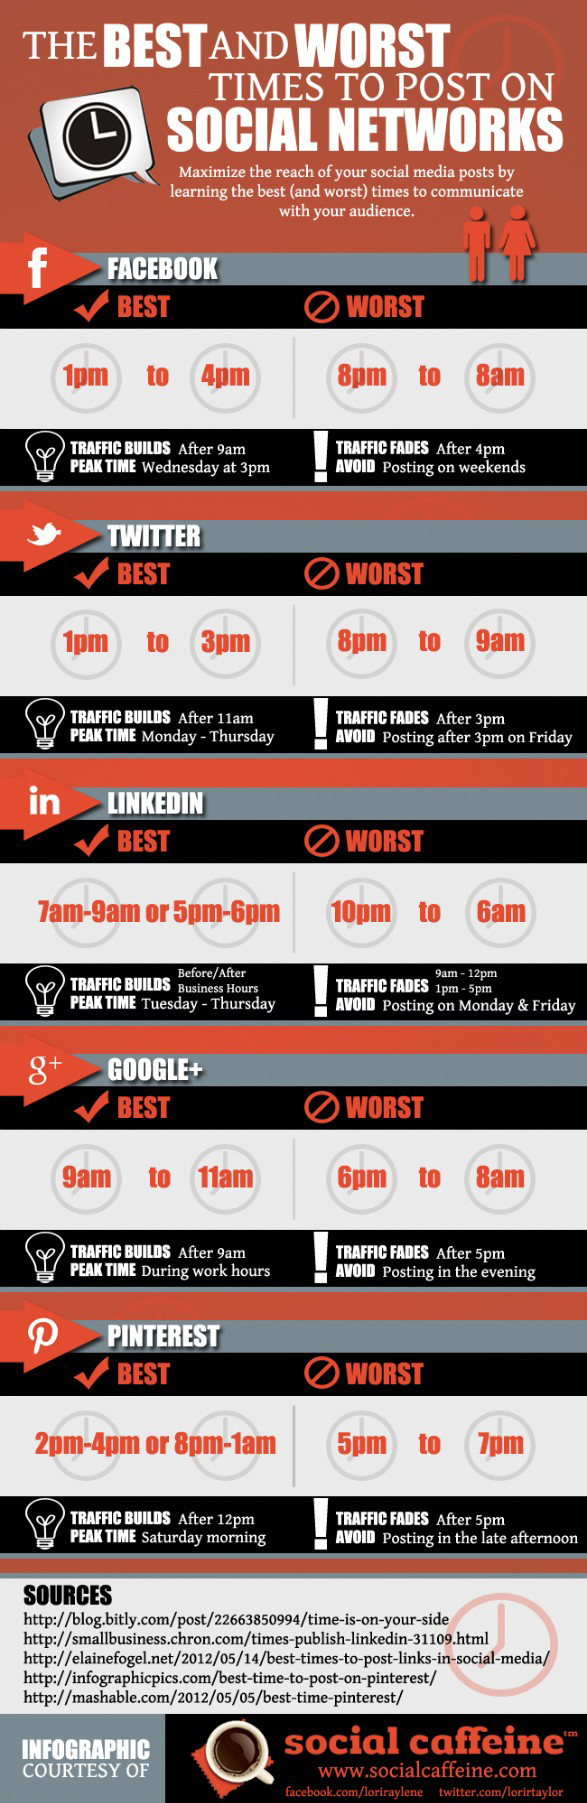 Best Times to Post on Social Media [INFOGRAPHIC]   Social Media Today